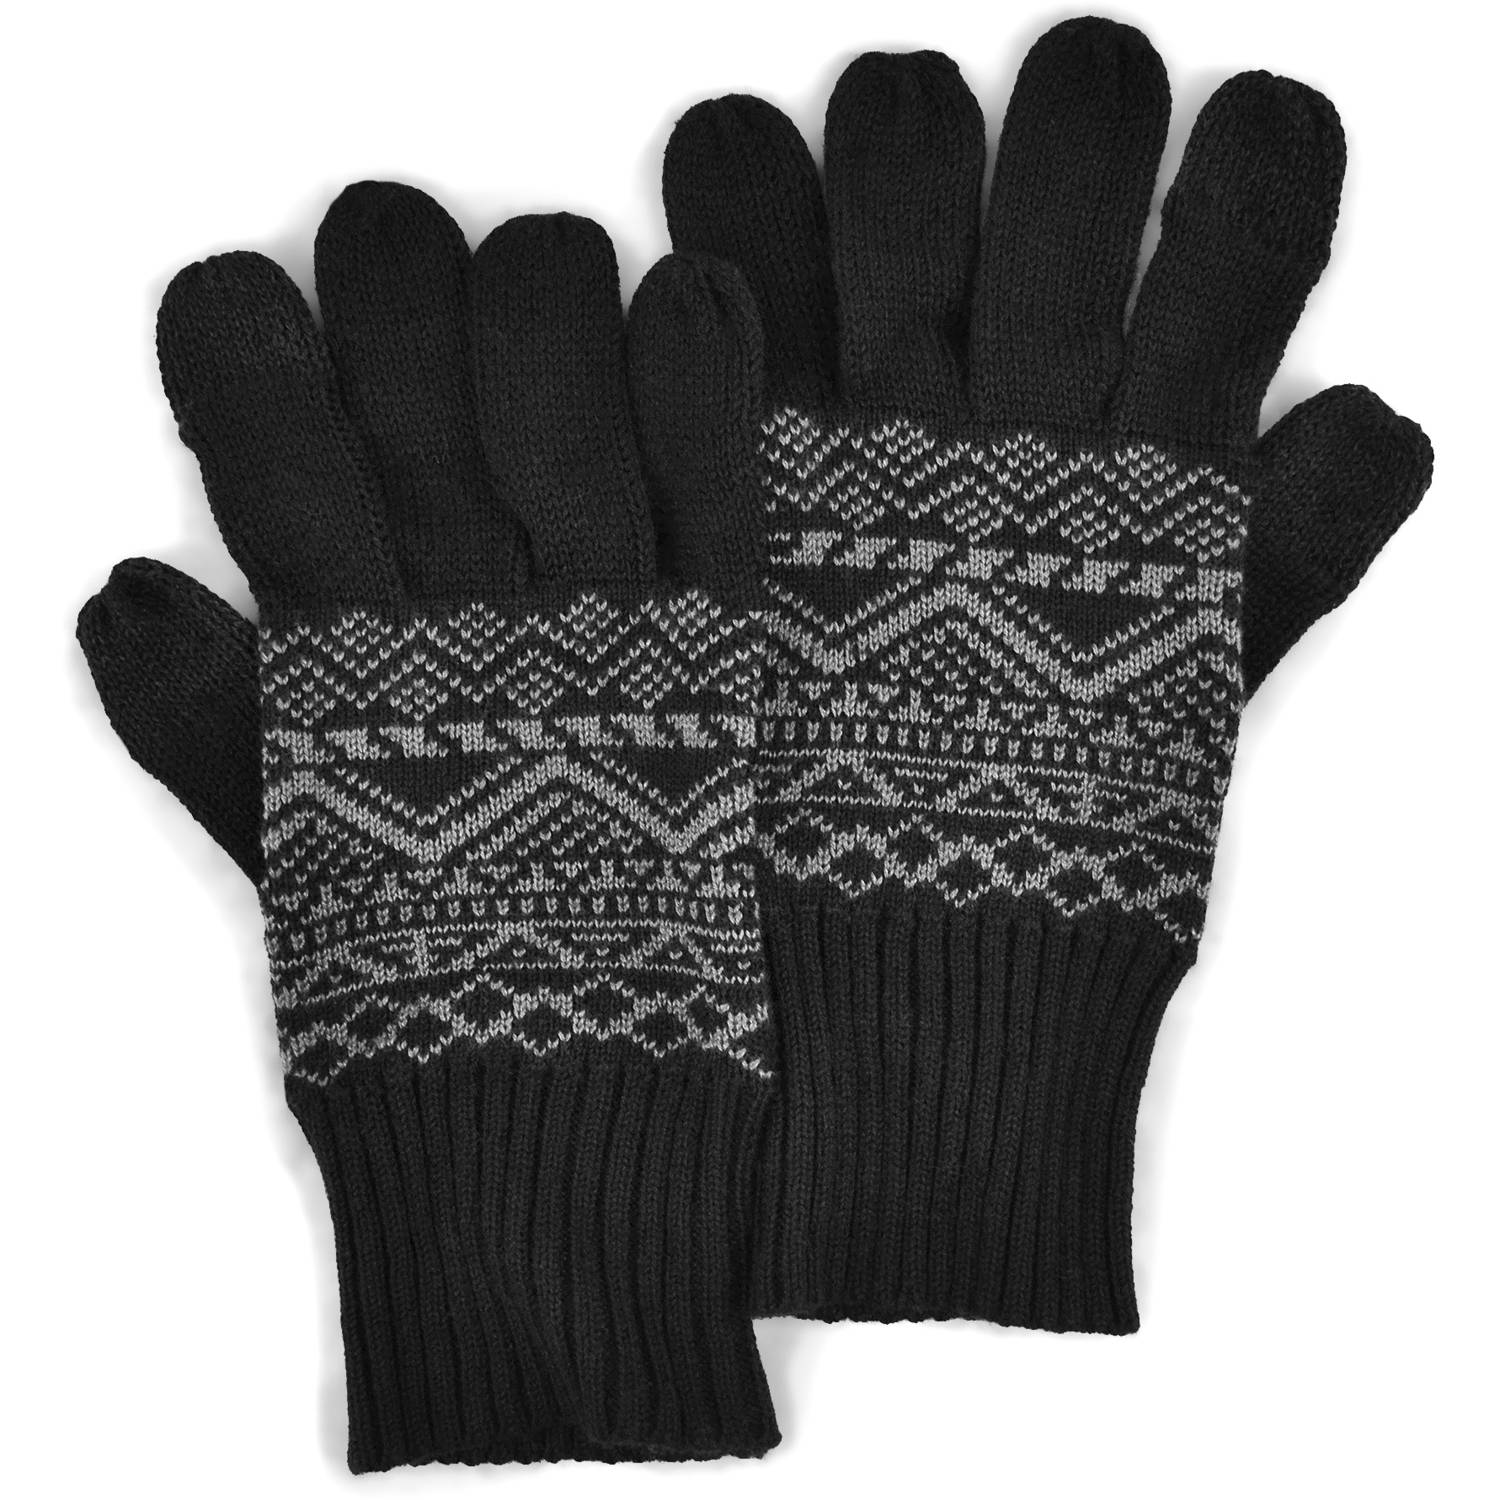 MUK LUKS Men's Pattern Gloves with Texting Thumb and Fingers